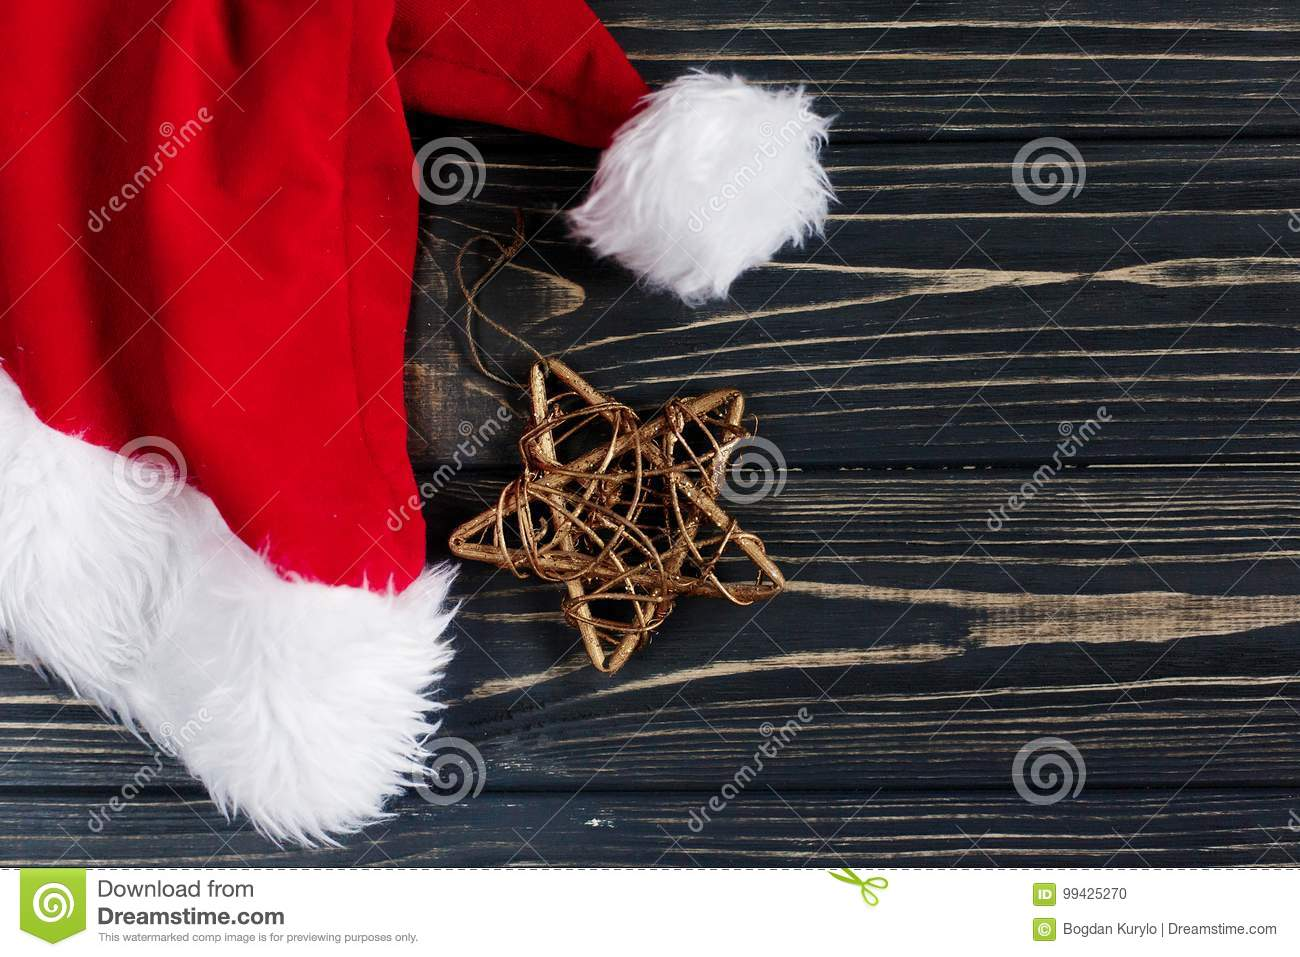 7e20c5bad84f5 Christmas golden star and santa hat on stylish black rustic wooden  background. space for text. holiday greeting card concept. unusual creative  top view